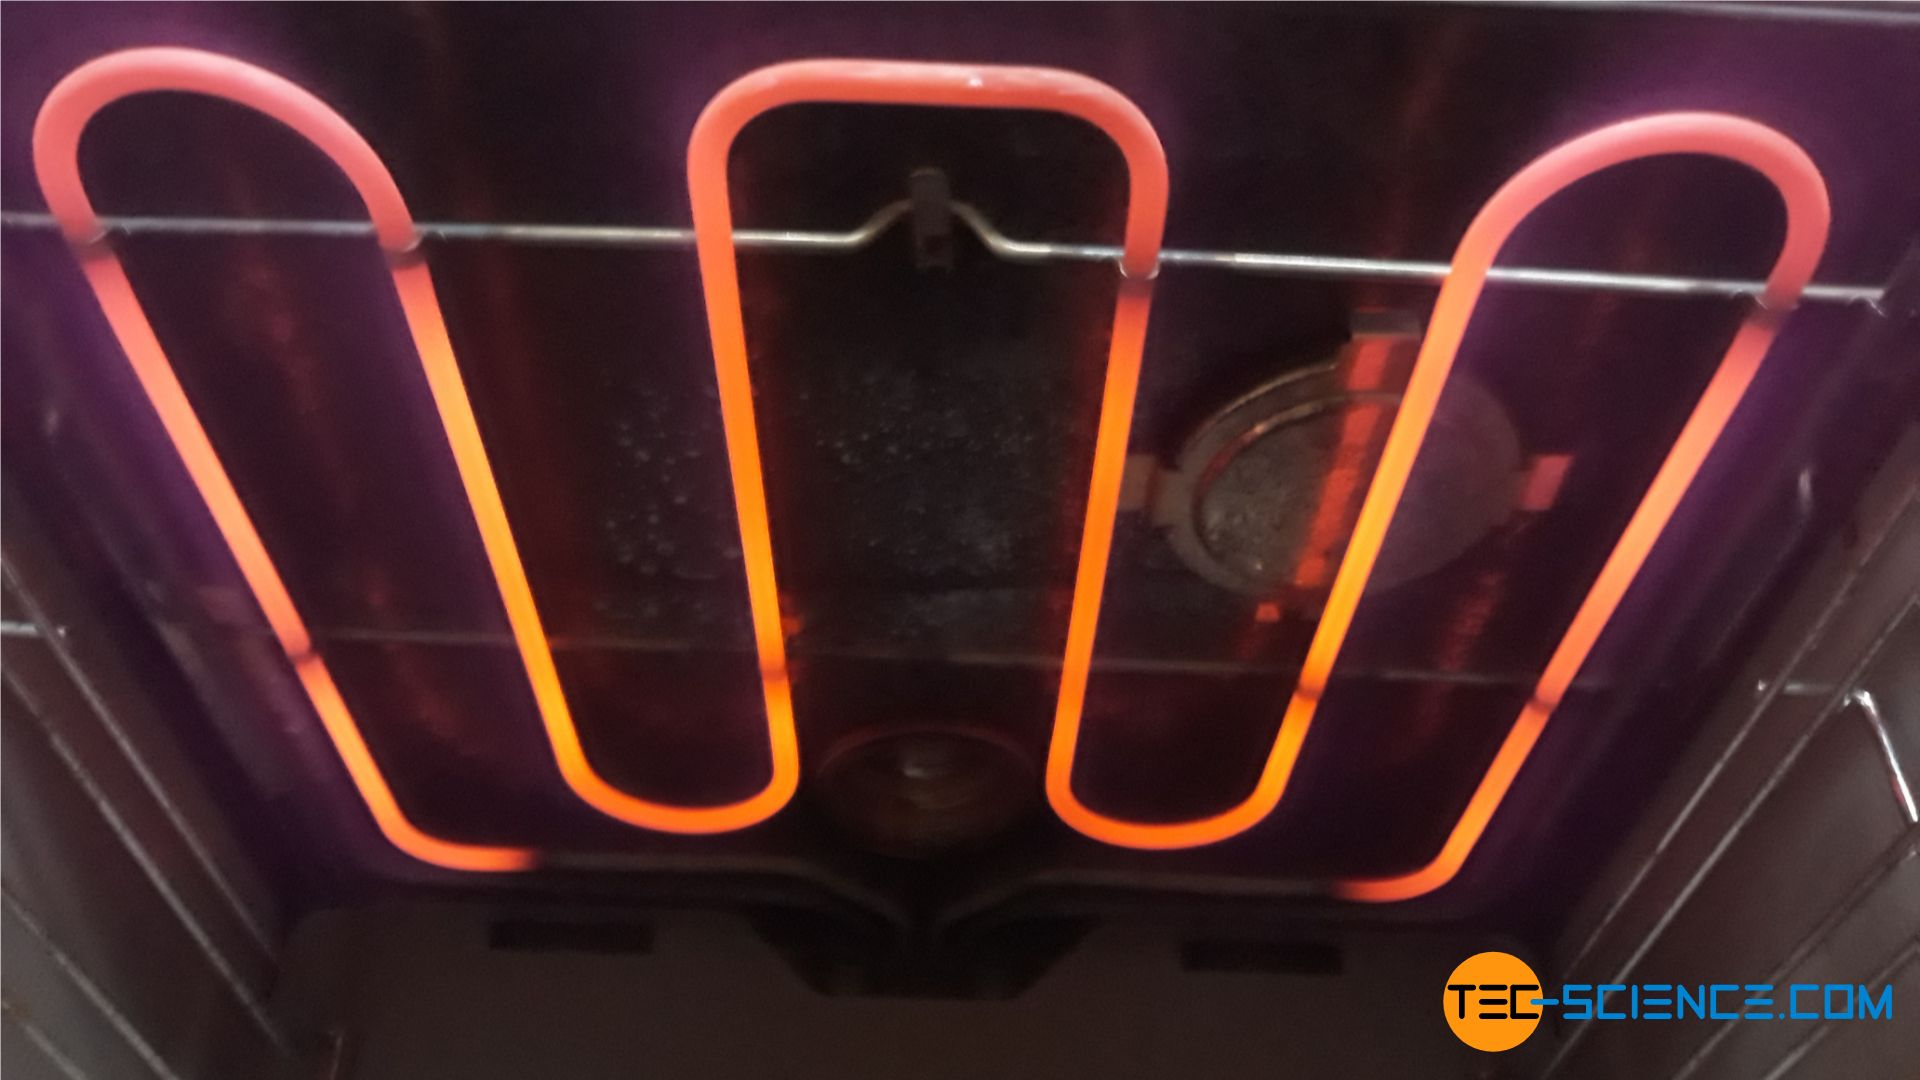 Red glow of the heating element of an oven